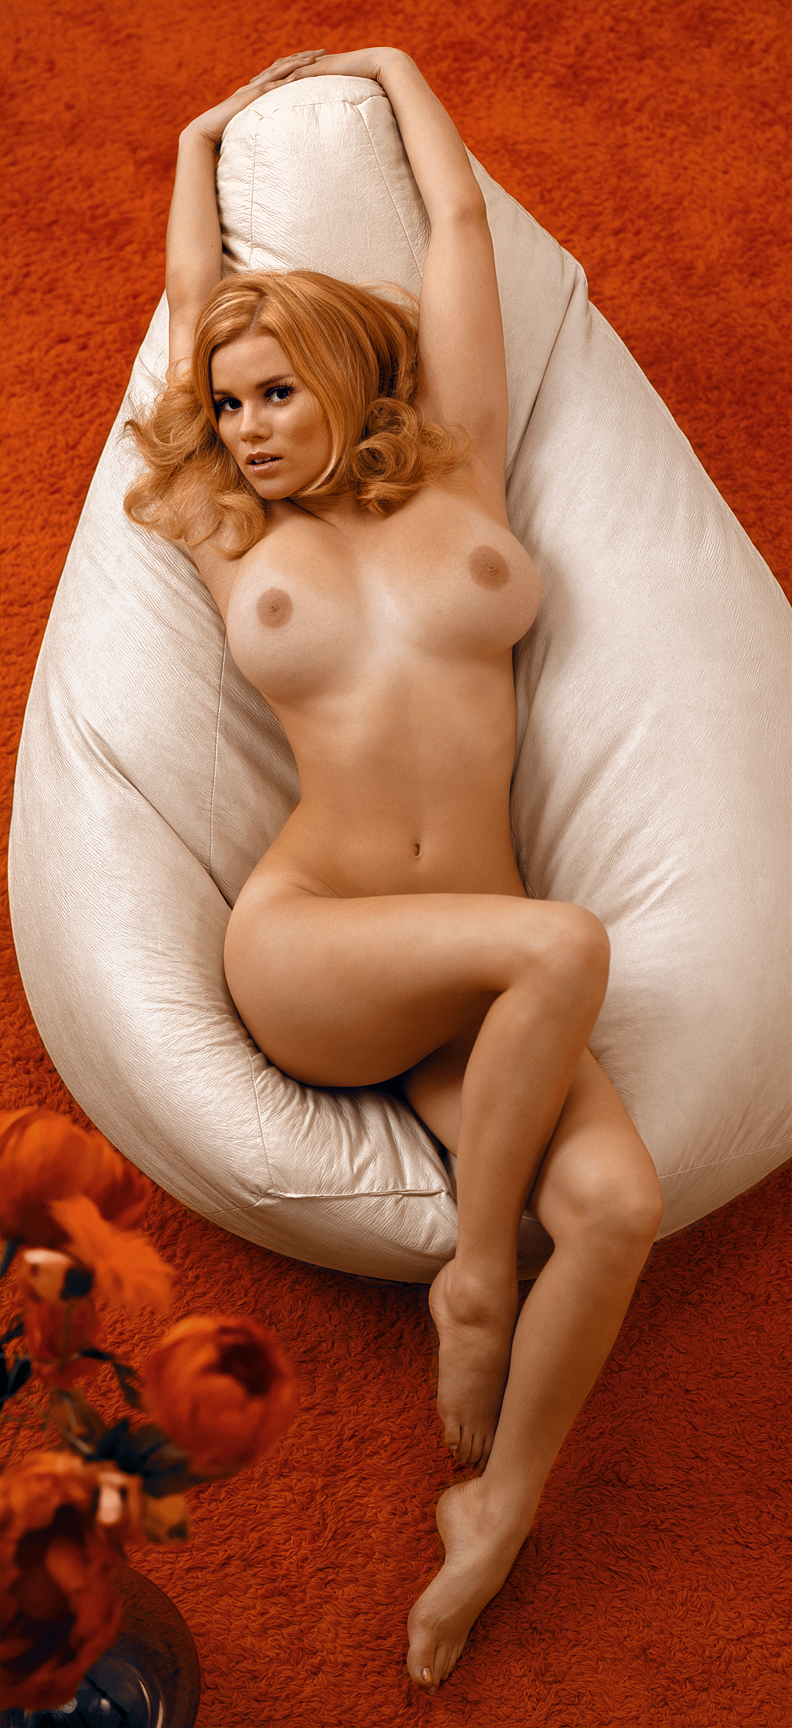 With erotic gallery photography public congratulate